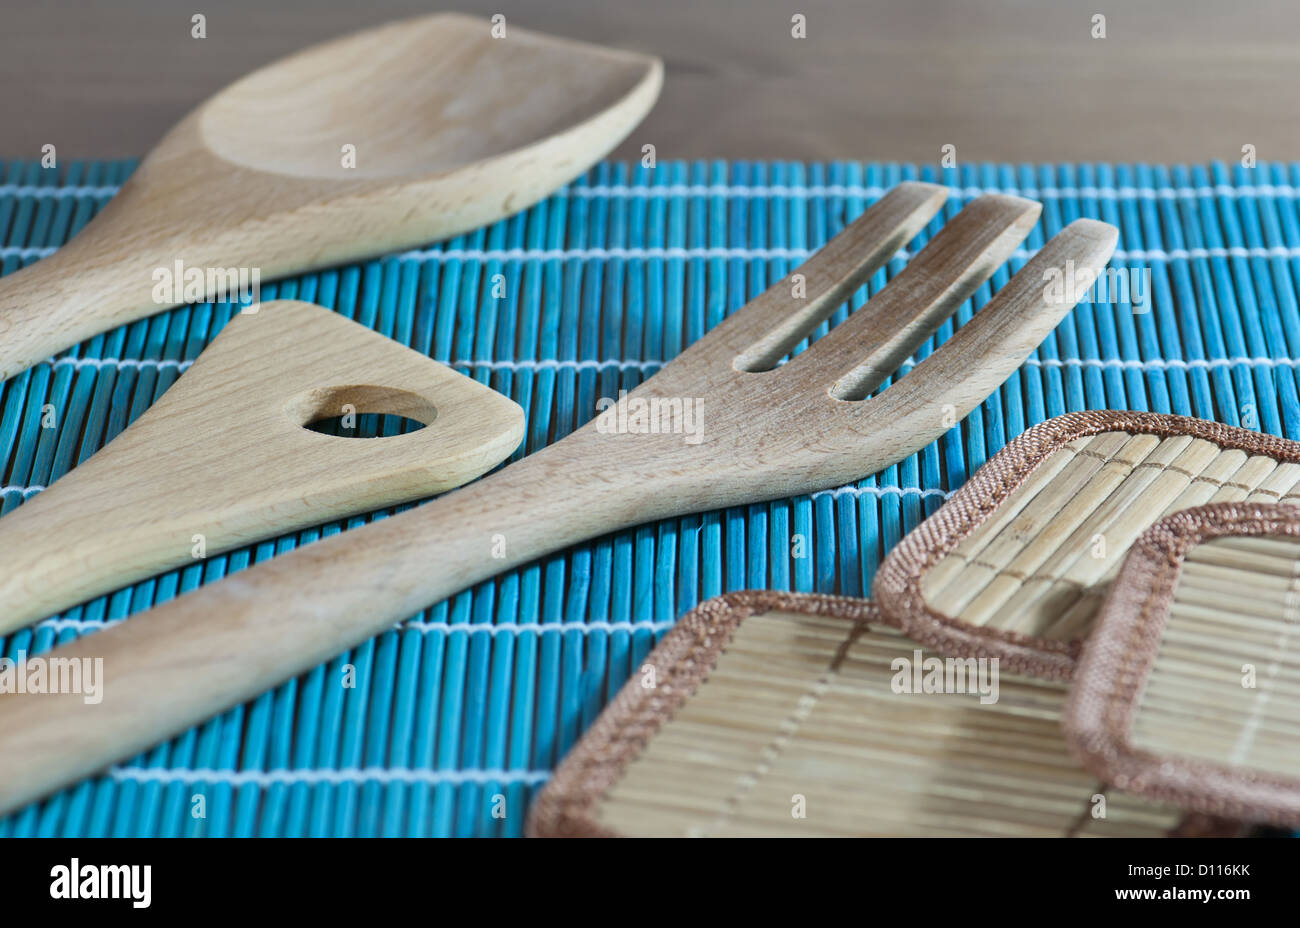 Kitchen Utensils Of The Wood Stock Photos & Kitchen Utensils Of The ...